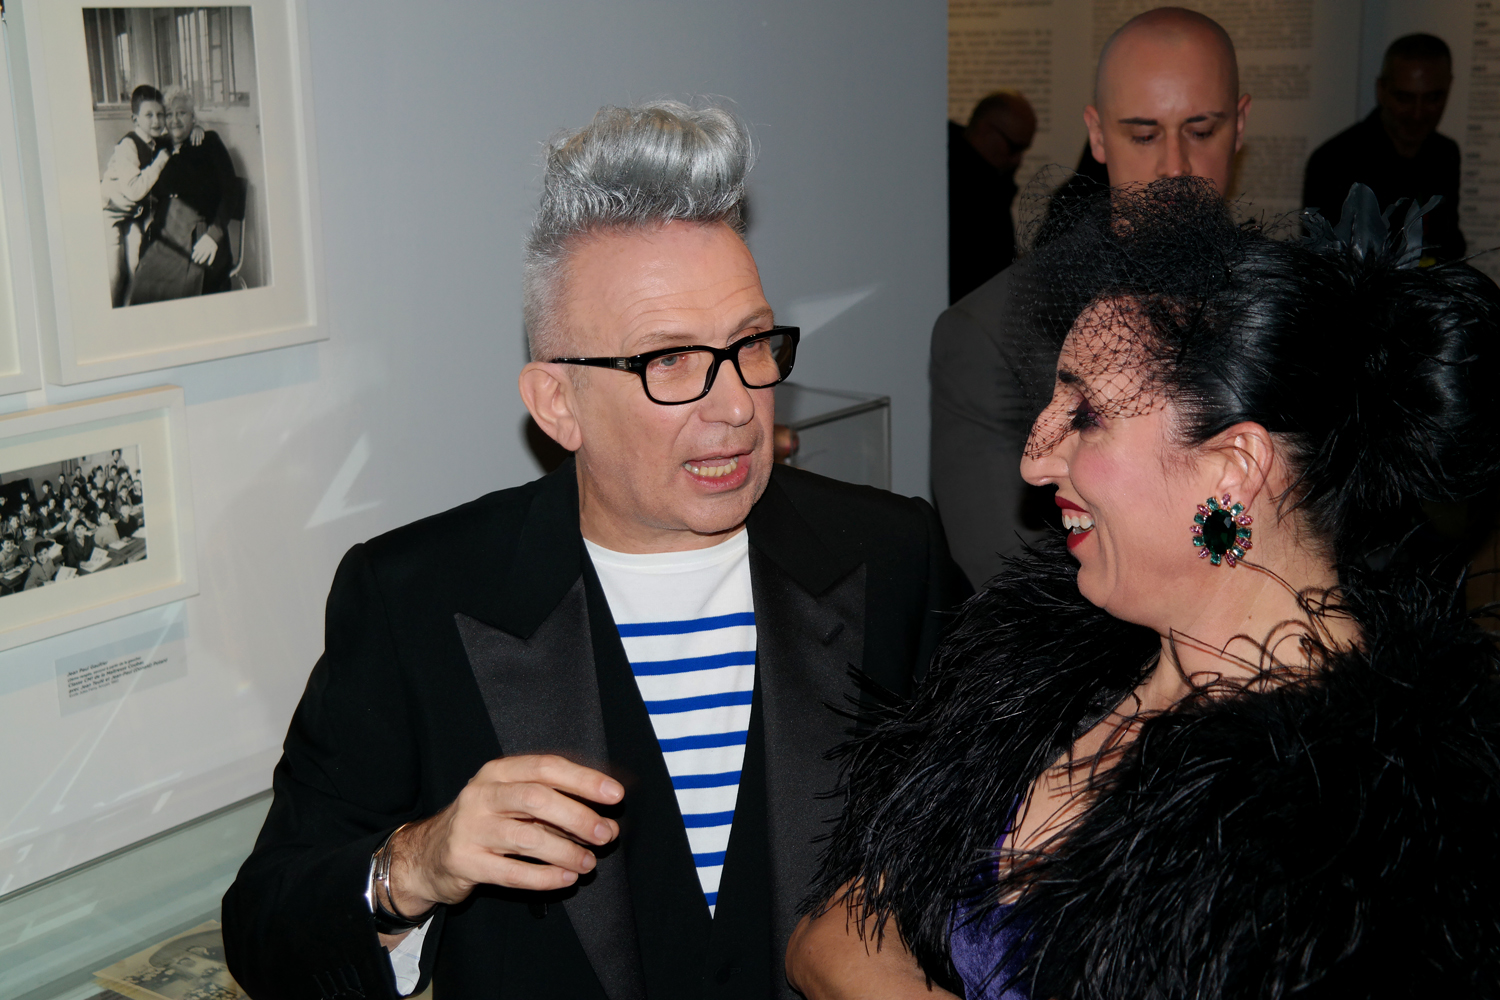 Rossy-de-Palma-Jean-Paul-Gaultier-opening-exhibition-vernissage-exposition-Grand-palais-paris-photo-couture-fashion-mode-by-united-states-of-paris-blog